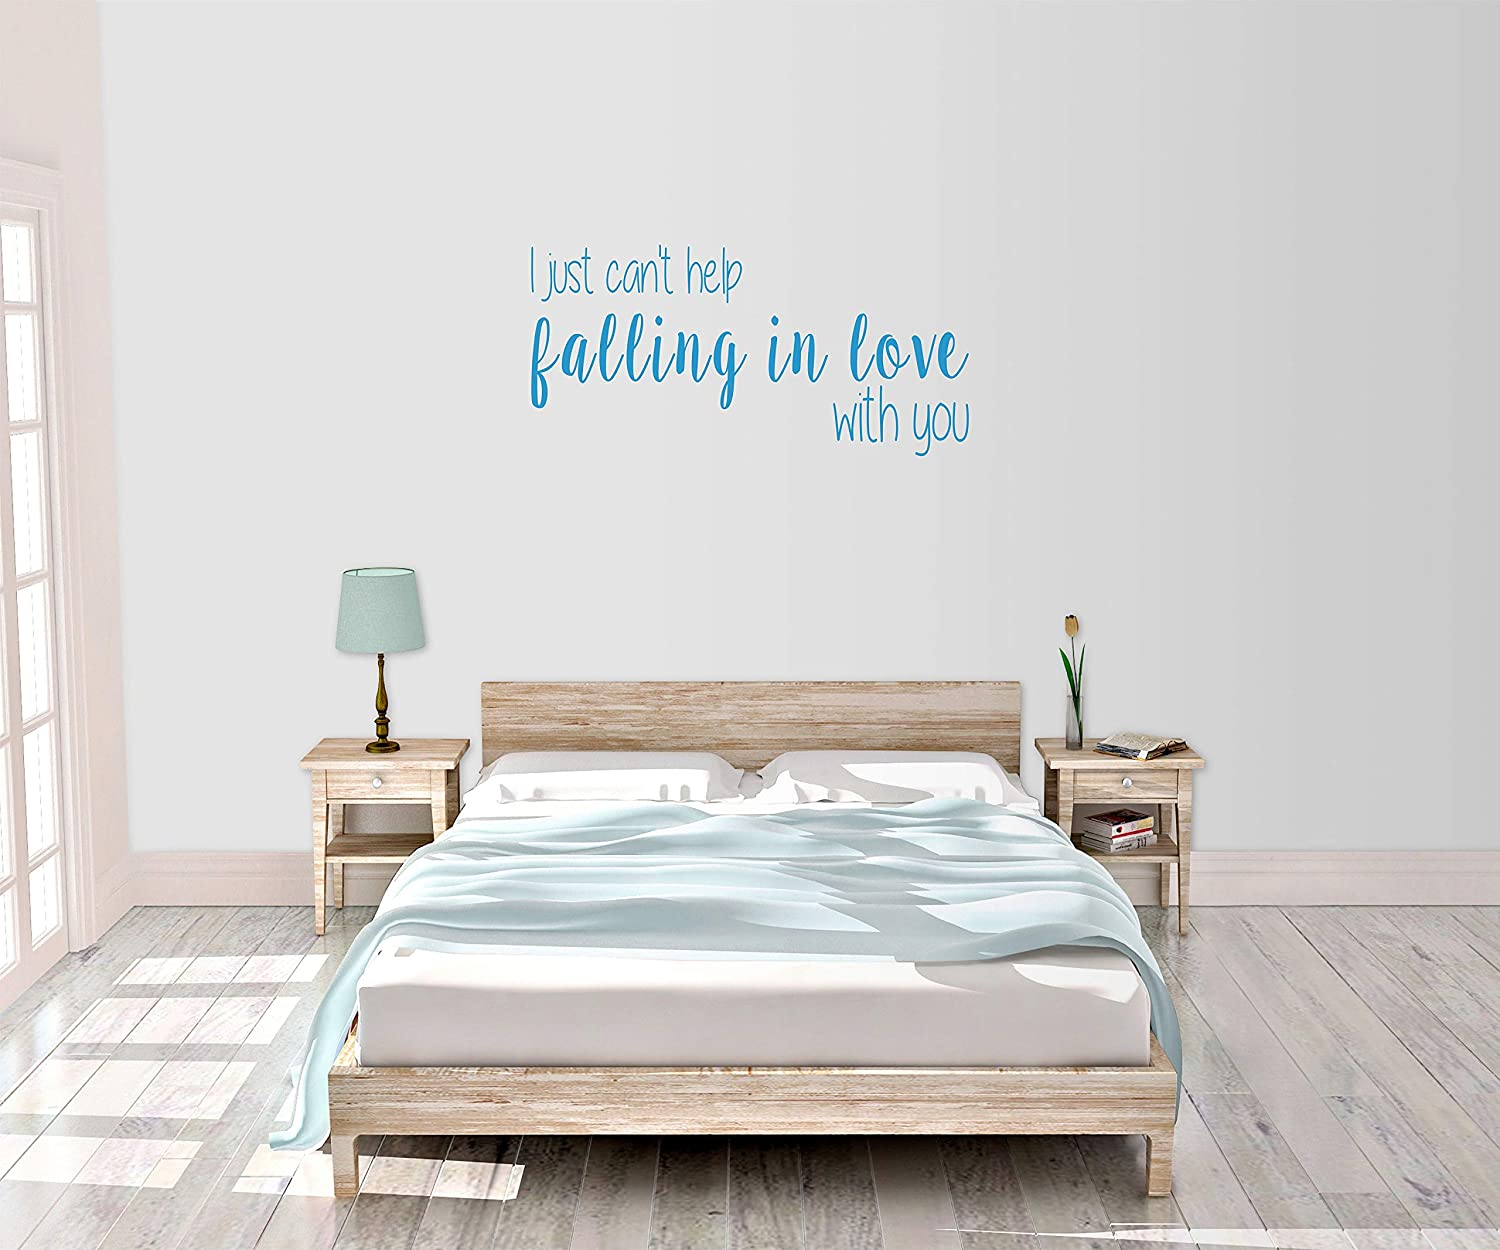 Amazon Com I Just Can T Help Falling In Love With You Romance Bedroom Decor Wall Art Vinyl Decal Sticker Made In Usa Home Kitchen